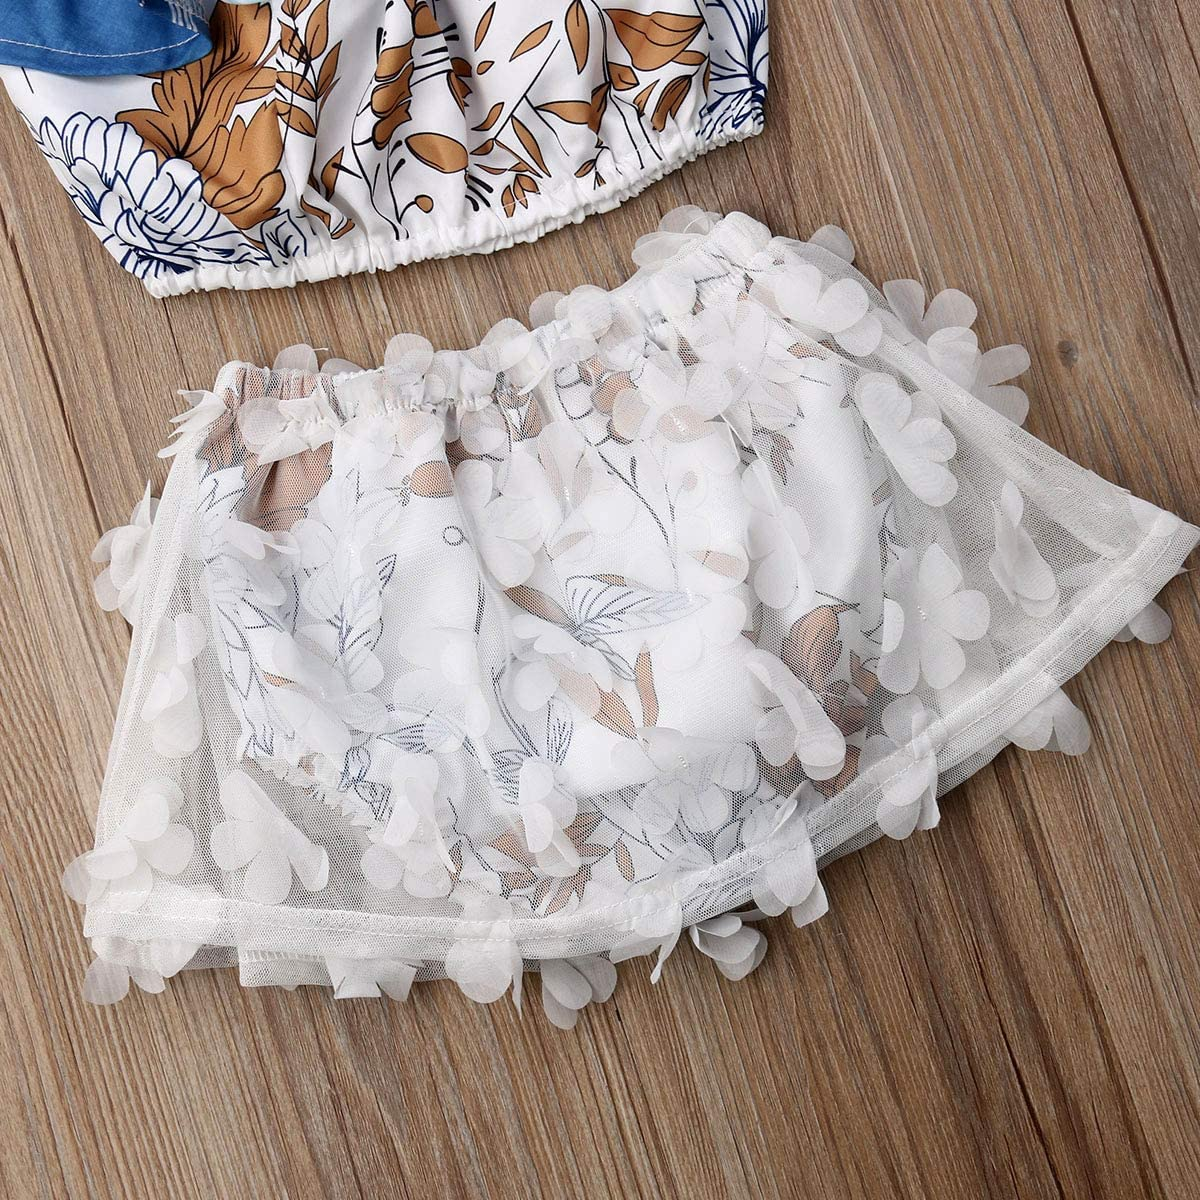 Newborn Kids Clothing Baby Girls Cute Ruffle Flower Vest Tank Top+Lace Bottom Shorts Pants 2Pcs Outfits Clothes Set